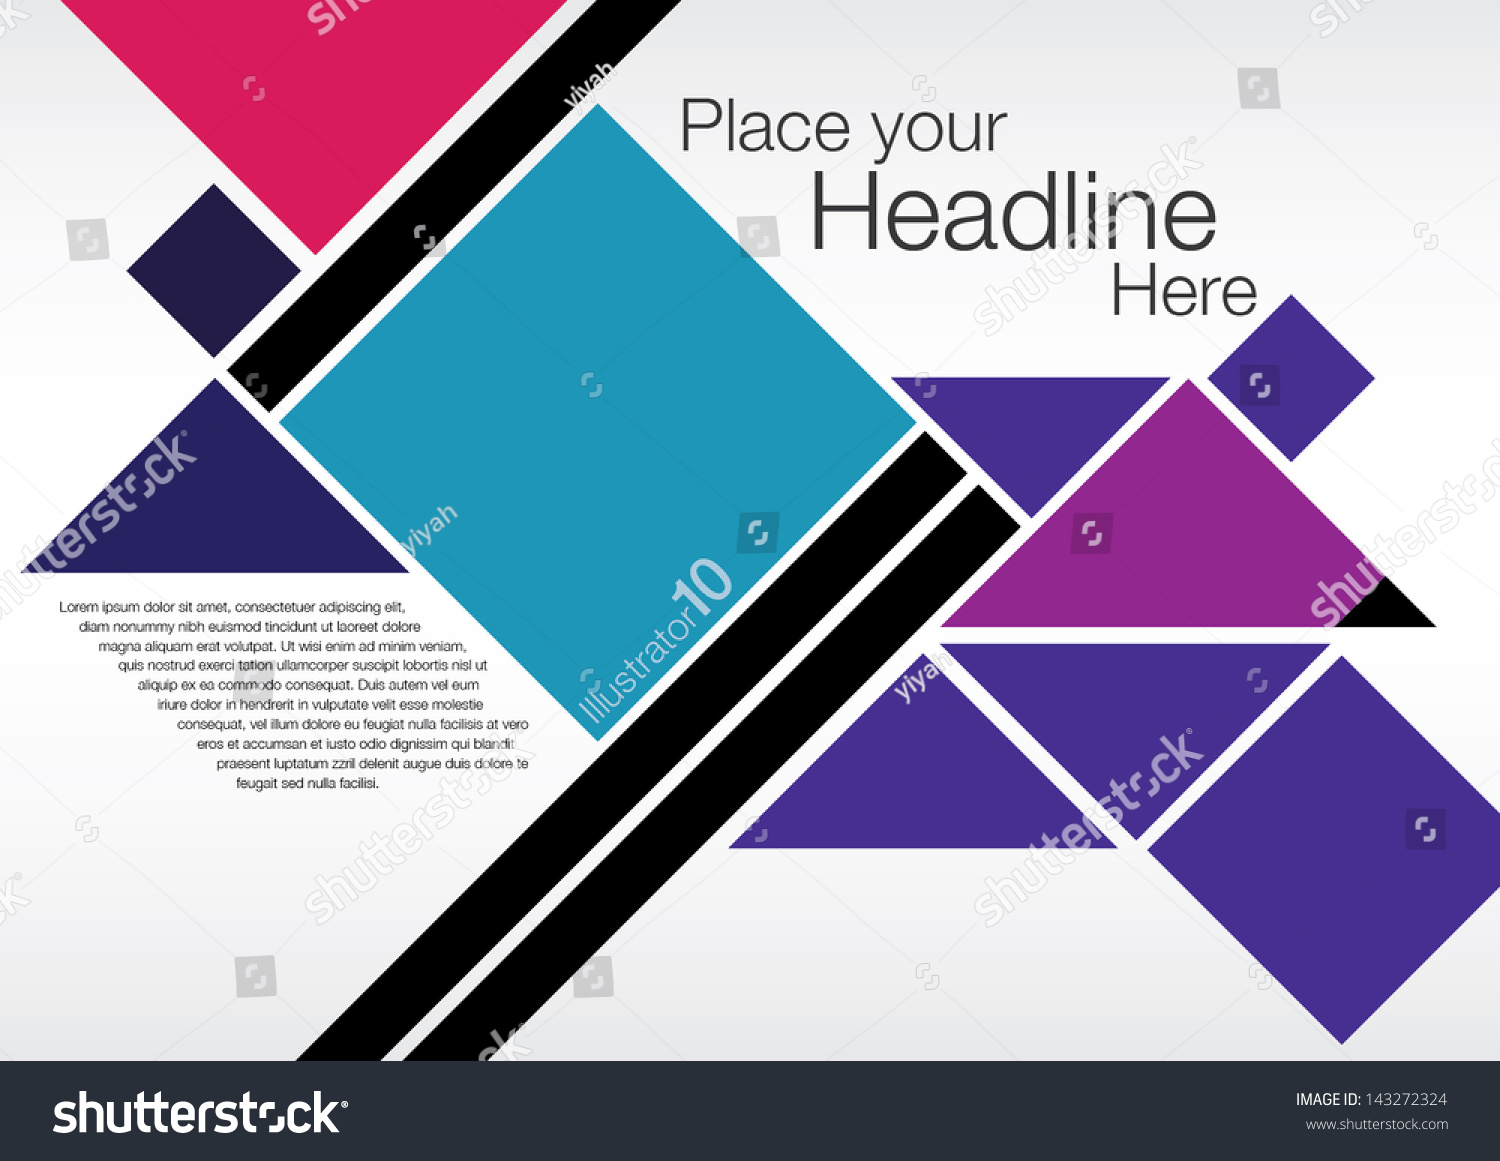 28 layout designer ppg mvp mvp tools amp services allotment layout designer poester design layout graphics stock vector illustration